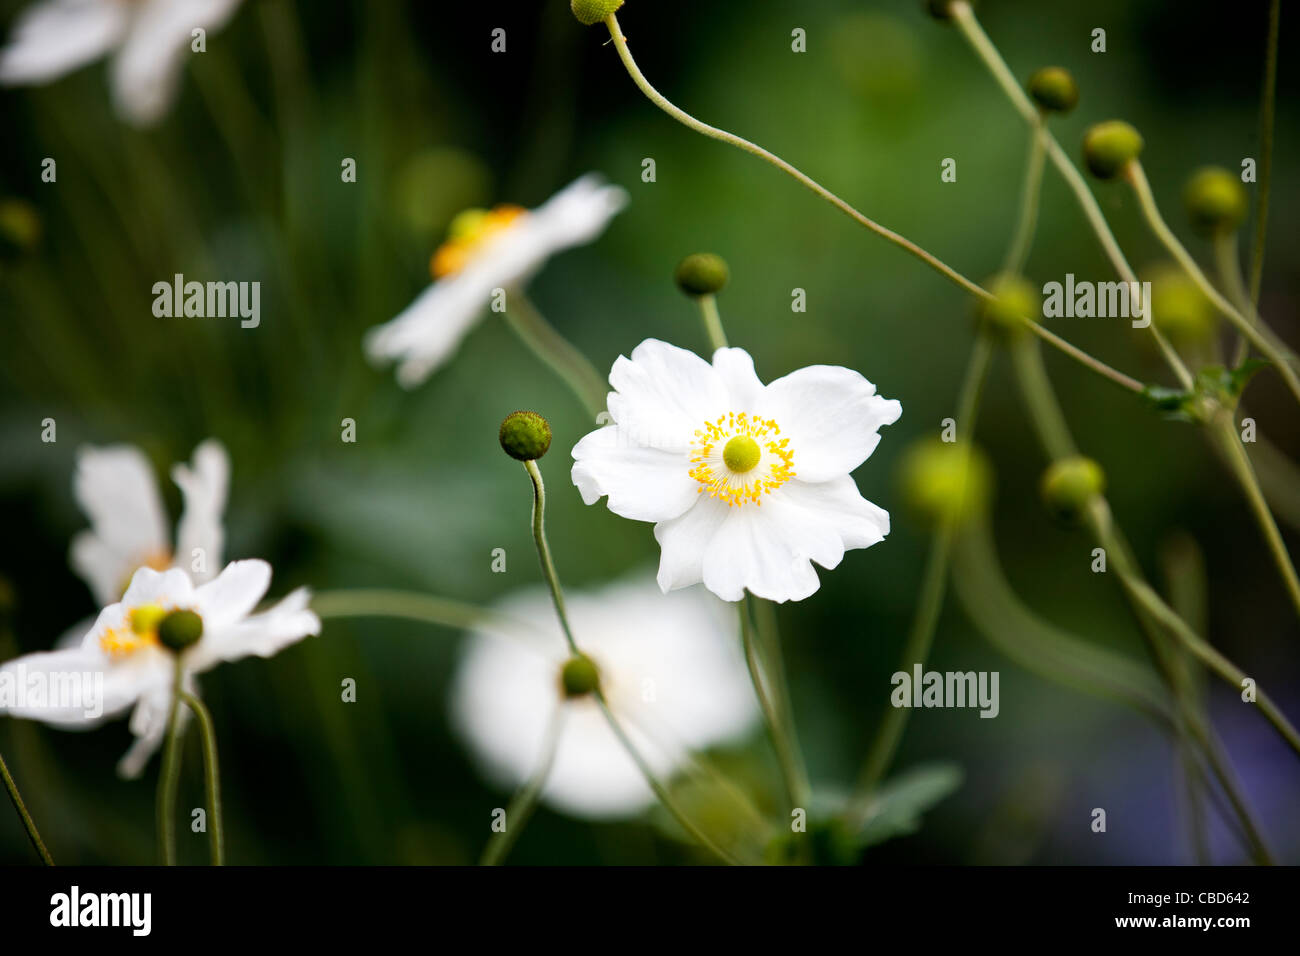 Flower with white petals and yellow center stock photos flower white japanese anemone flowers stock image mightylinksfo